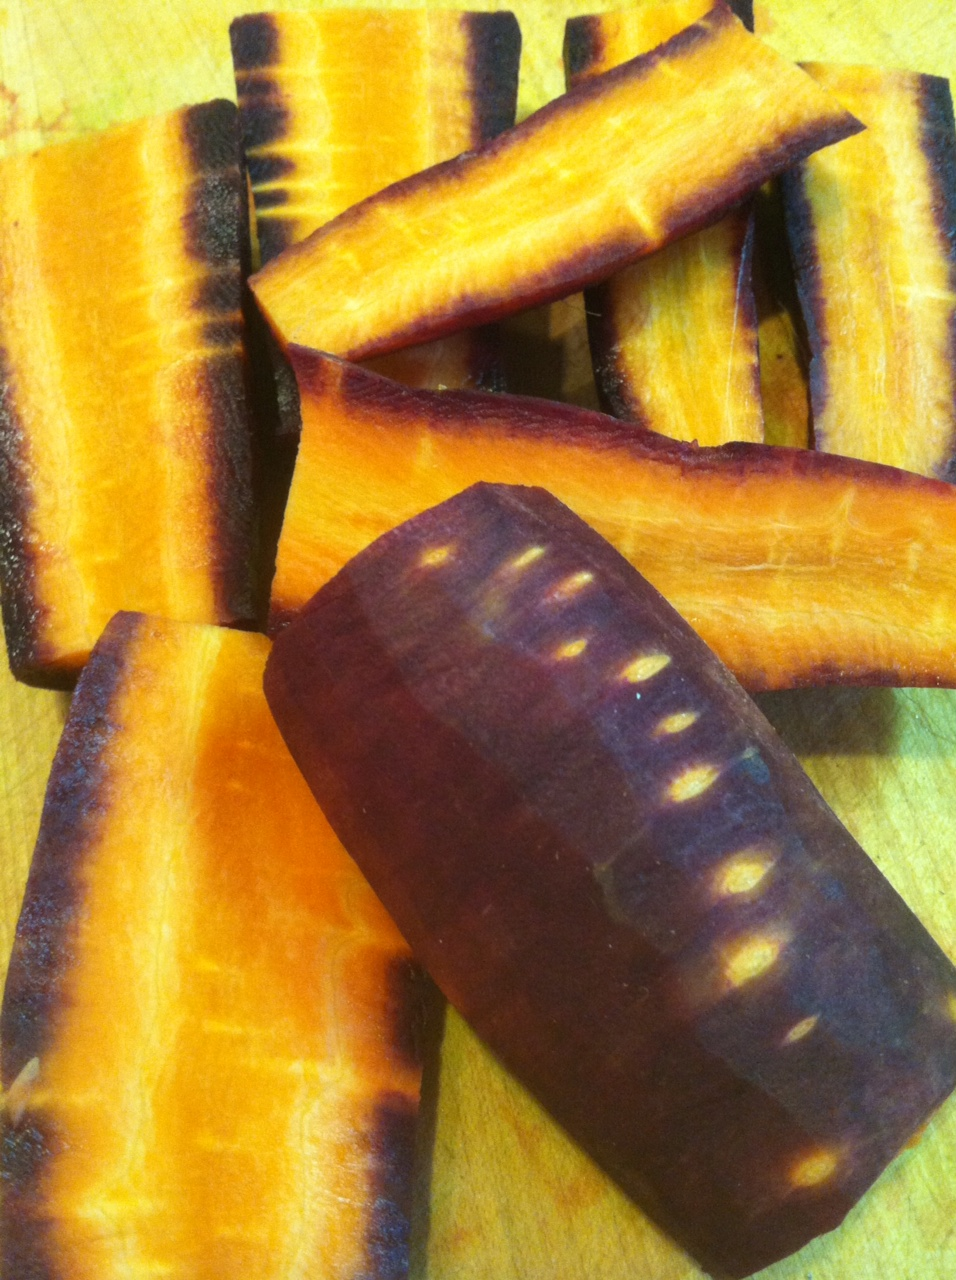 purple carrots cut